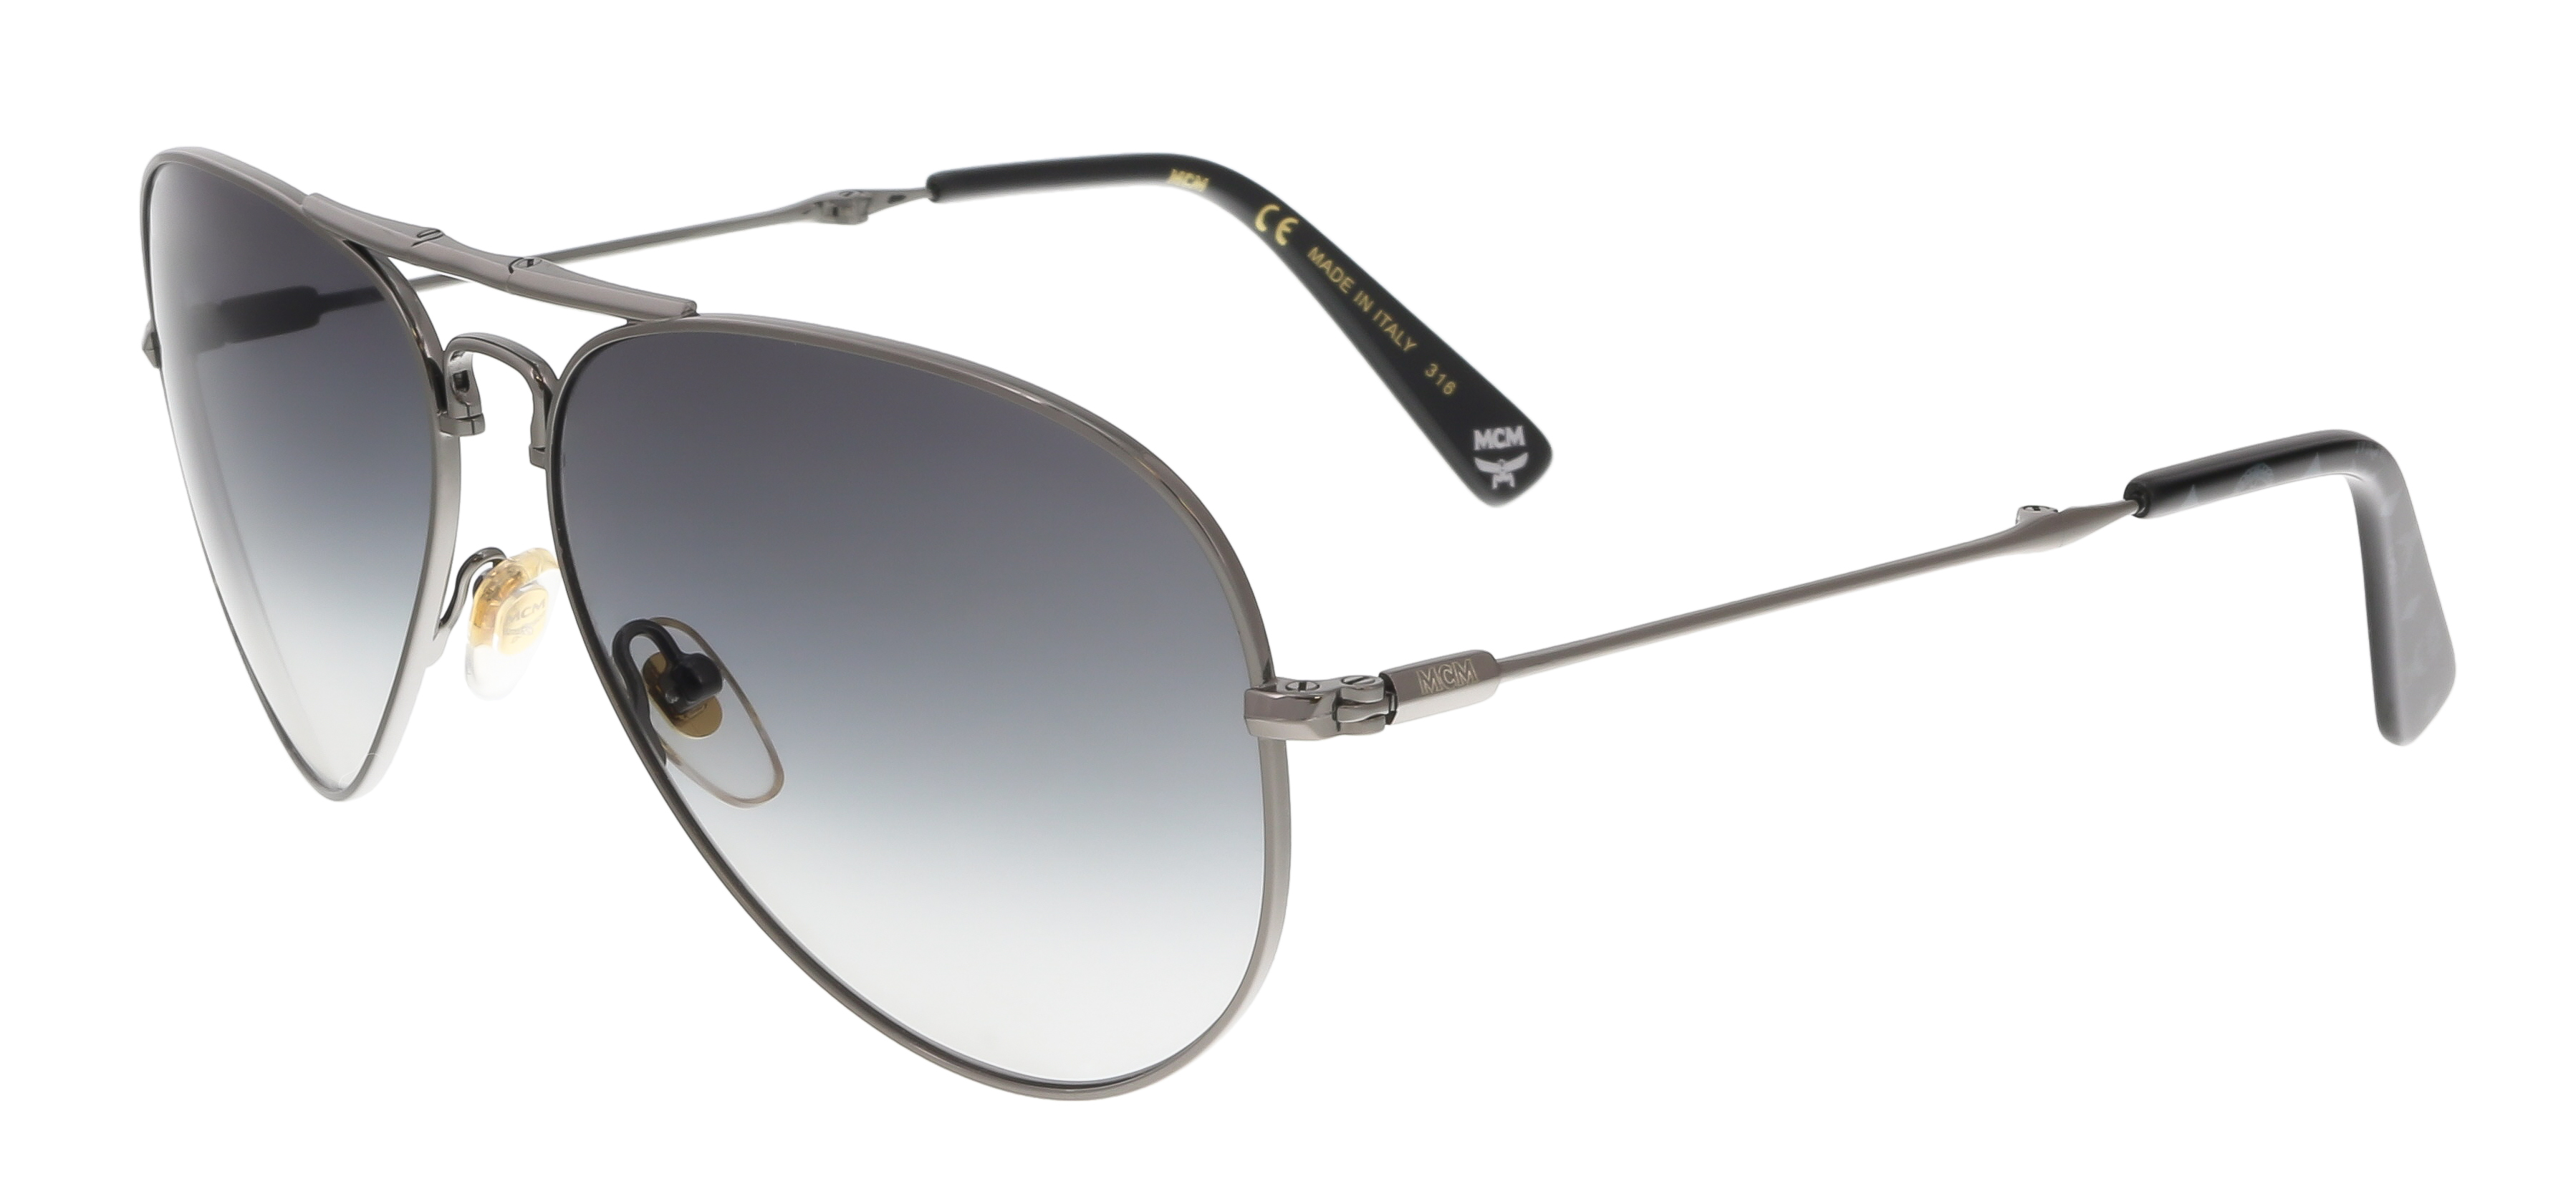 MCM101S 069 Shiny Dark Ruthenium Aviator Feline Sunglasses